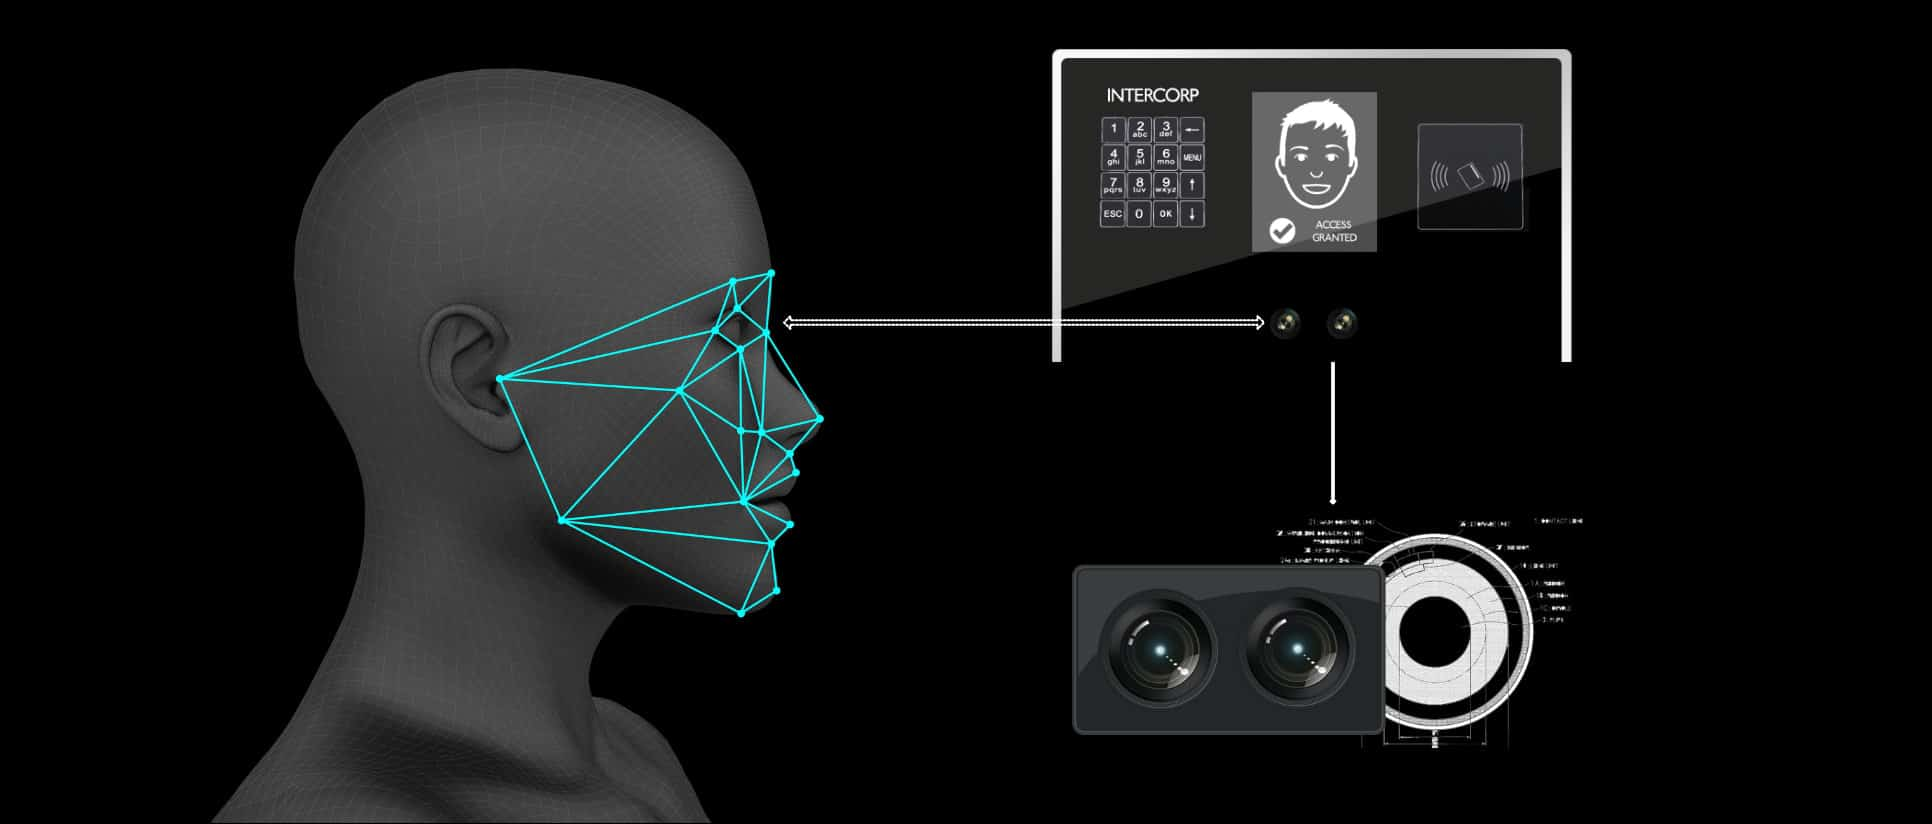 artist's impression of a biometric facial recognisation process using intercorp BAS